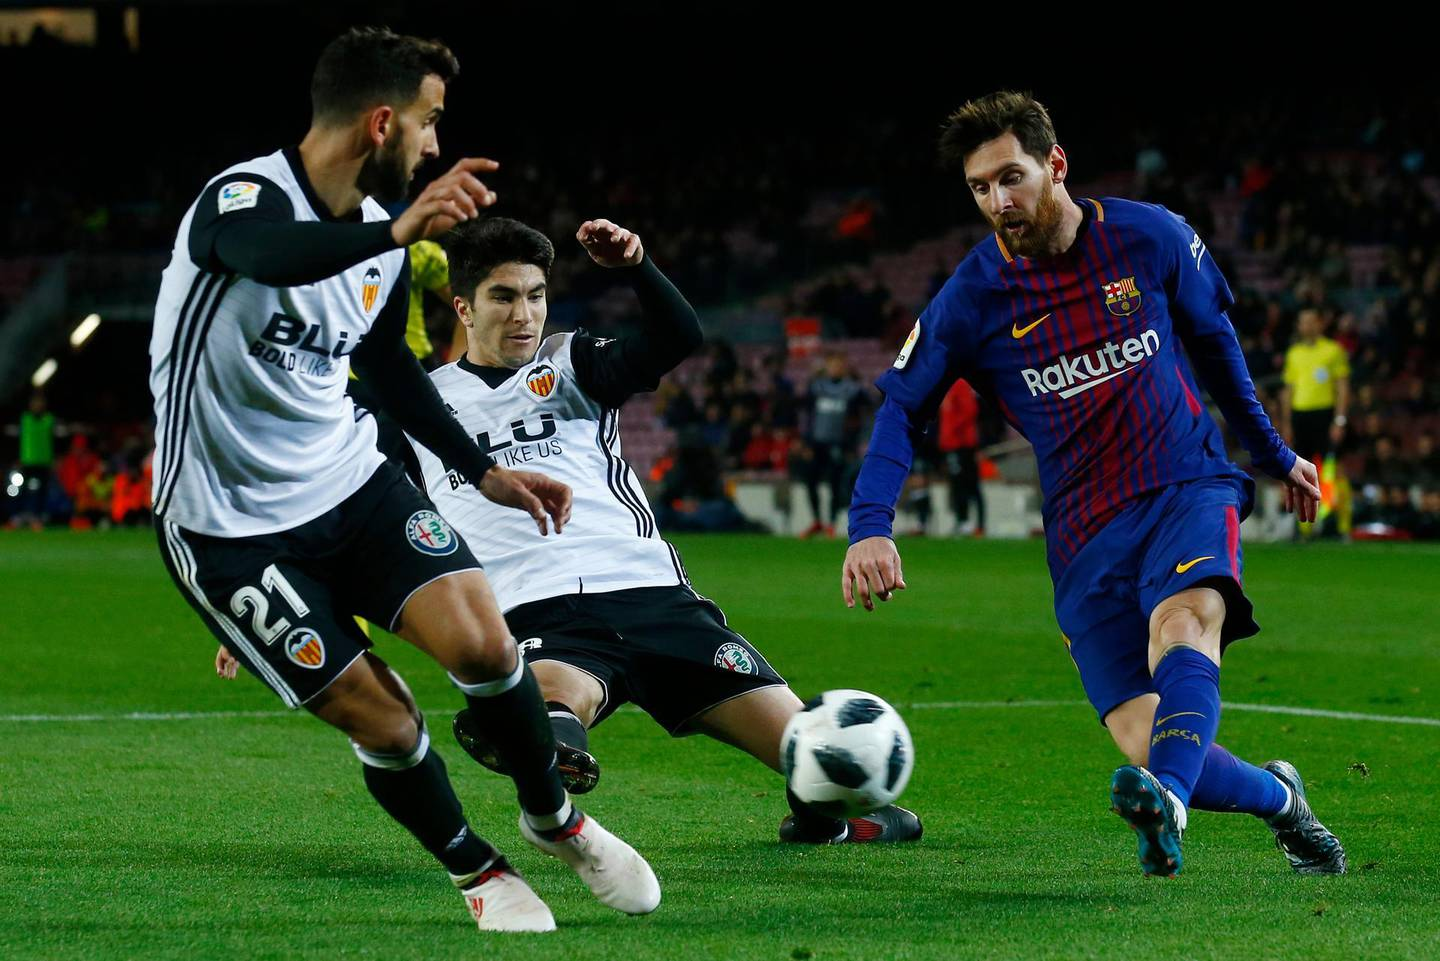 FC Barcelona's Lionel Messi, right, duels for the ball against Valencia's Carlos Soler during the Spanish Copa del Rey, semifinal, first leg, soccer match between FC Barcelona and Valencia at the Camp Nou stadium in Barcelona, Spain, Thursday, Feb. 1, 2018. (AP Photo/Manu Fernandez)